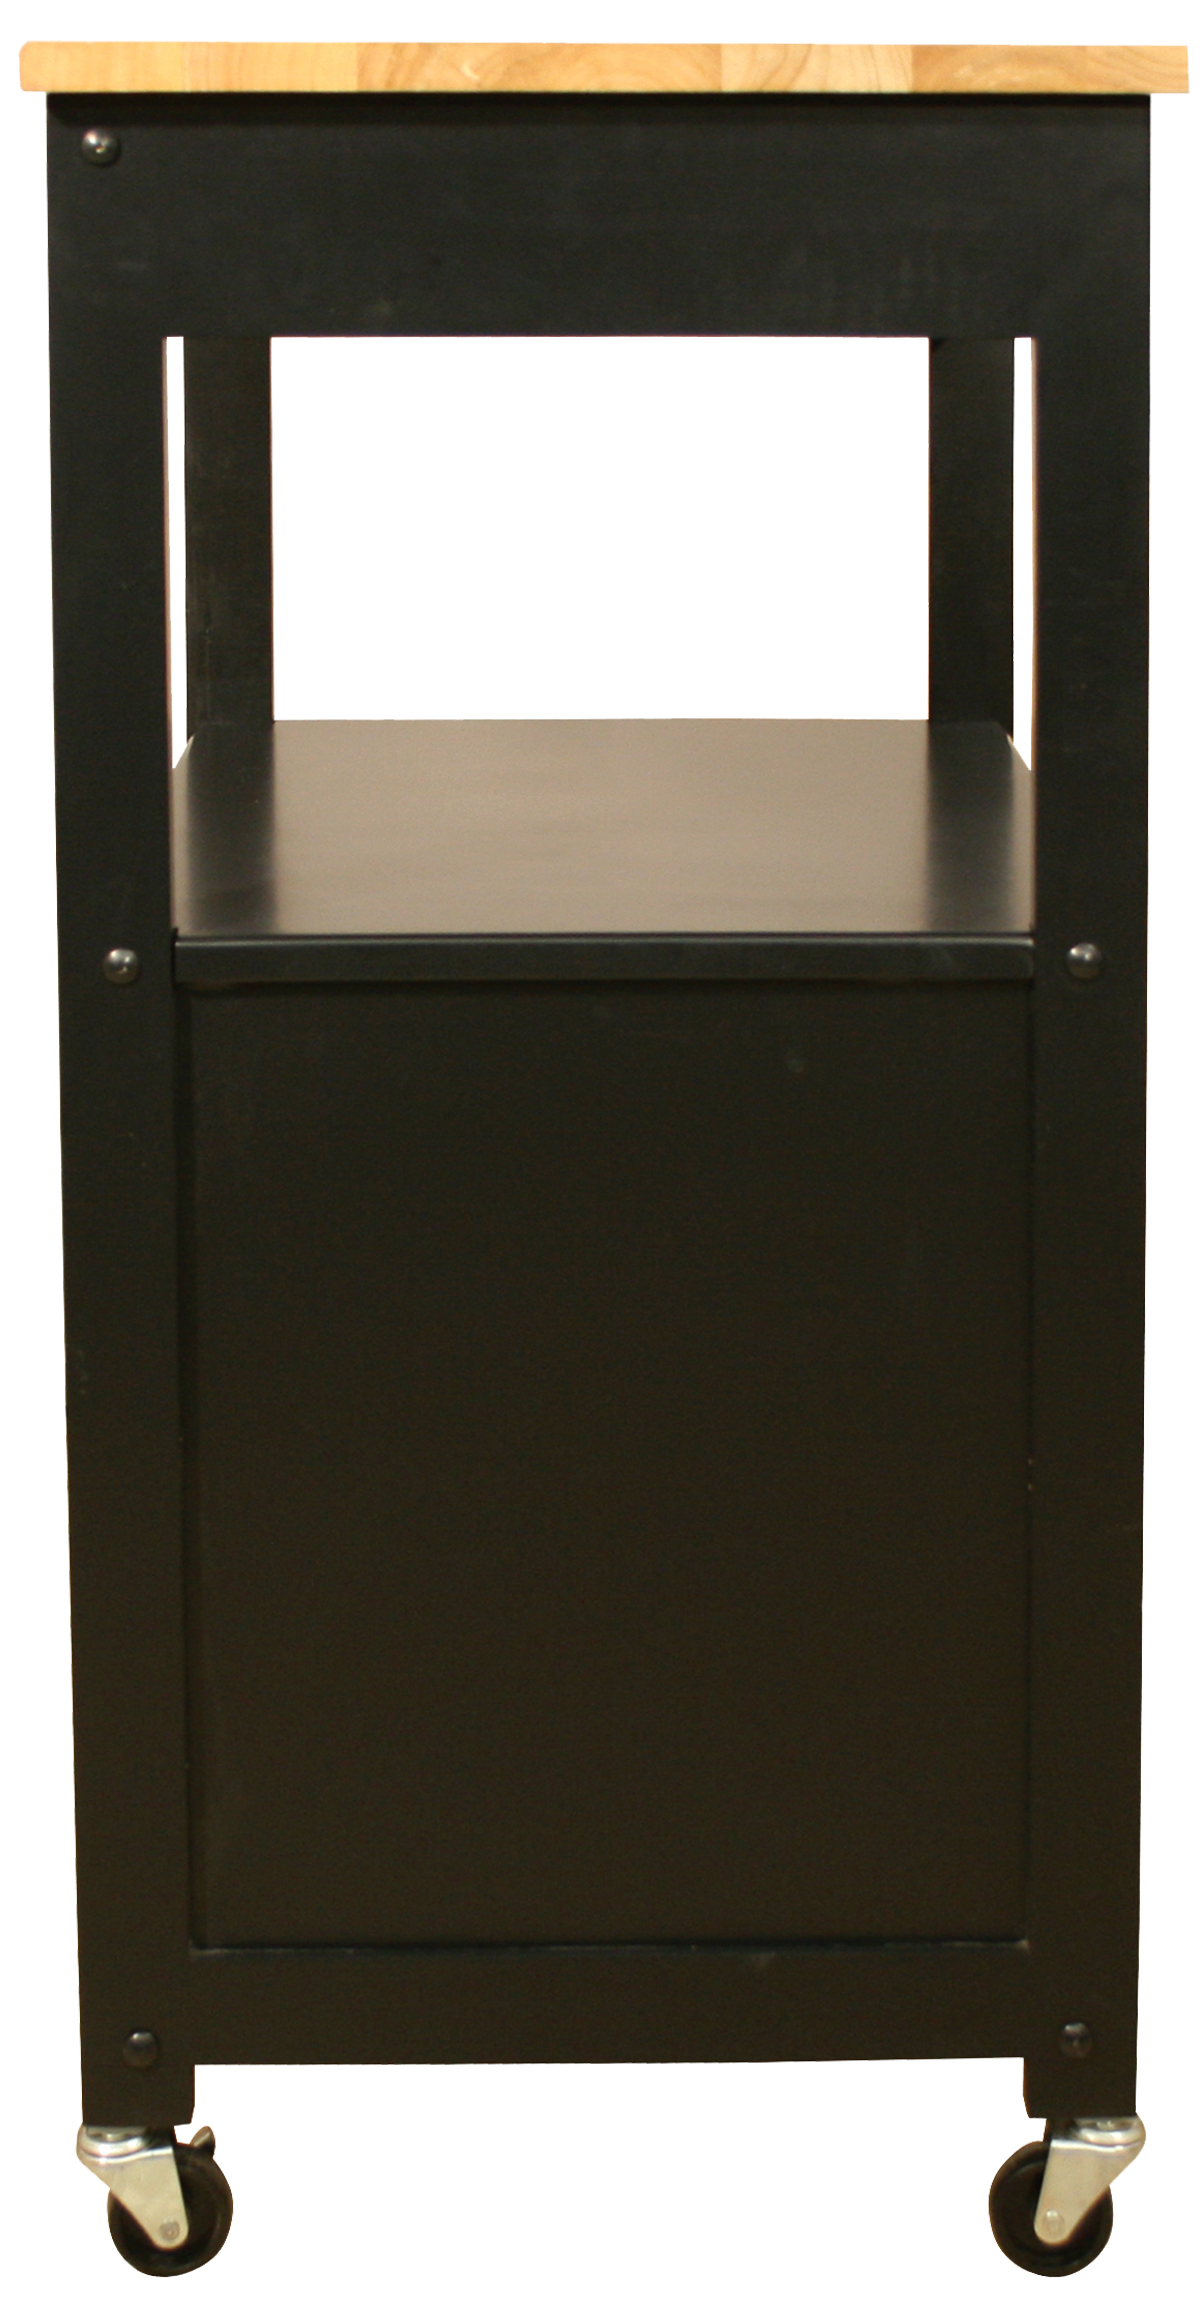 Catskill Black Open-Shelf Kitchen Trolley – 23